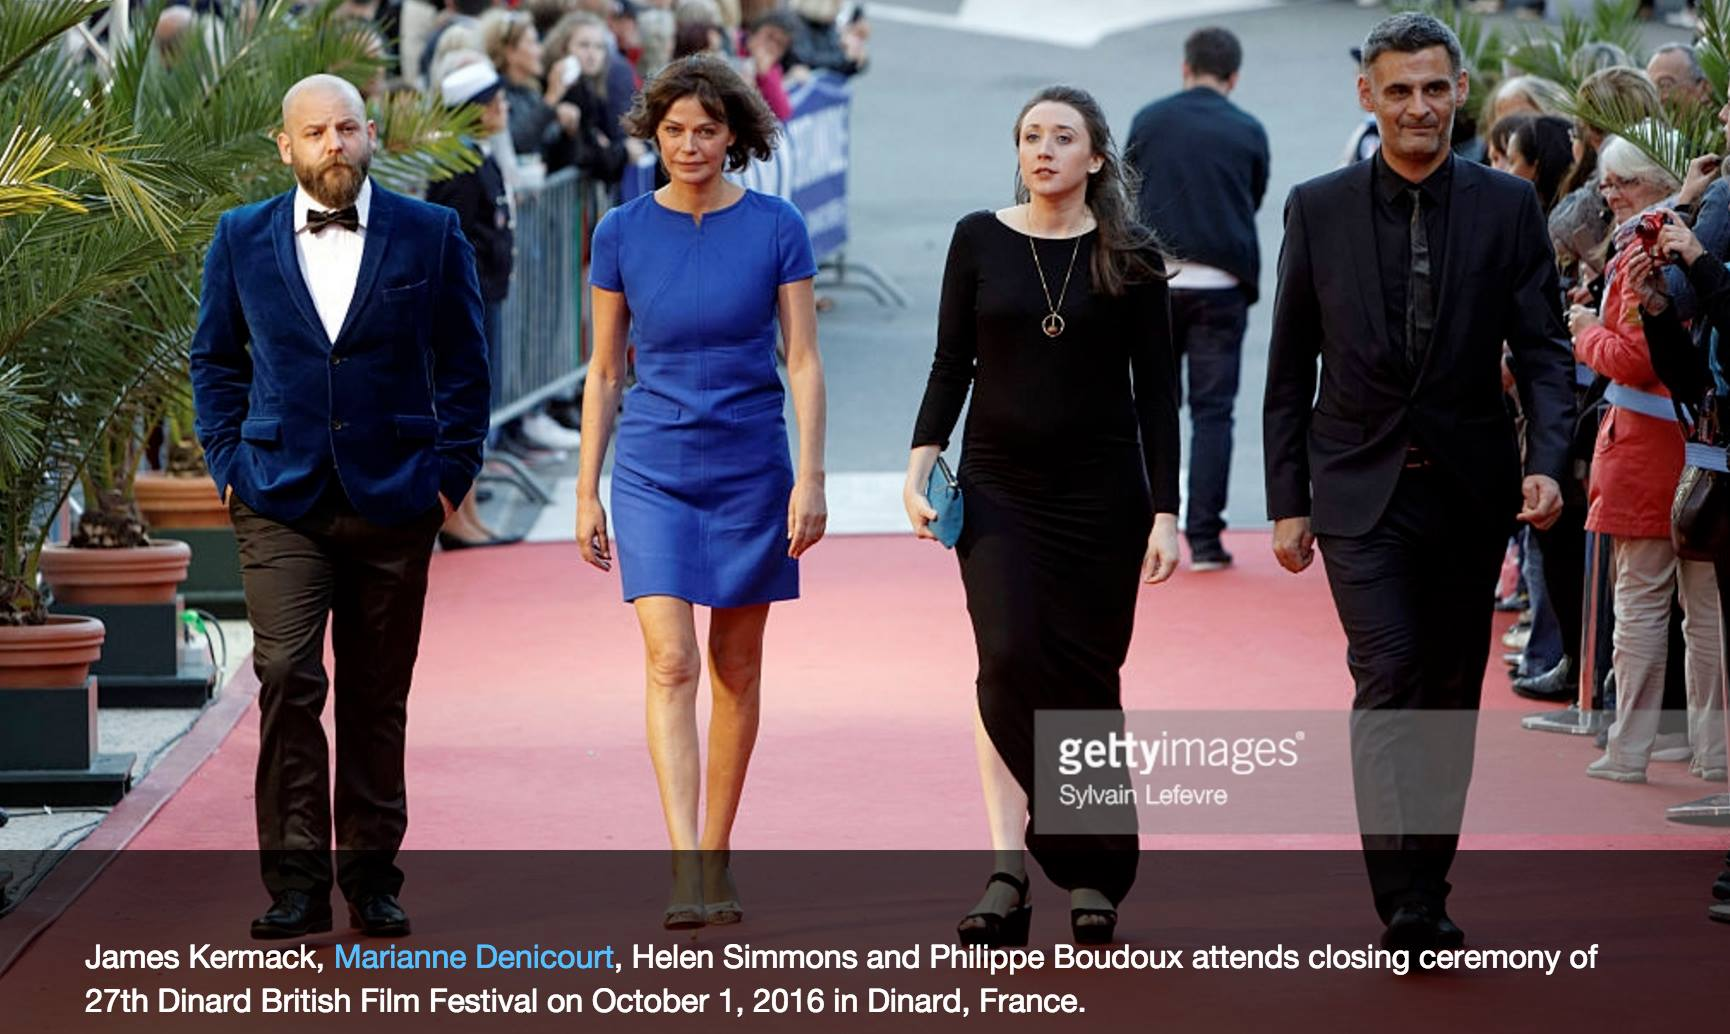 The judges of the first ever 'Shortcuts Jury' walking the red carpet at the 27th Dinard British Film Festival - 2016.